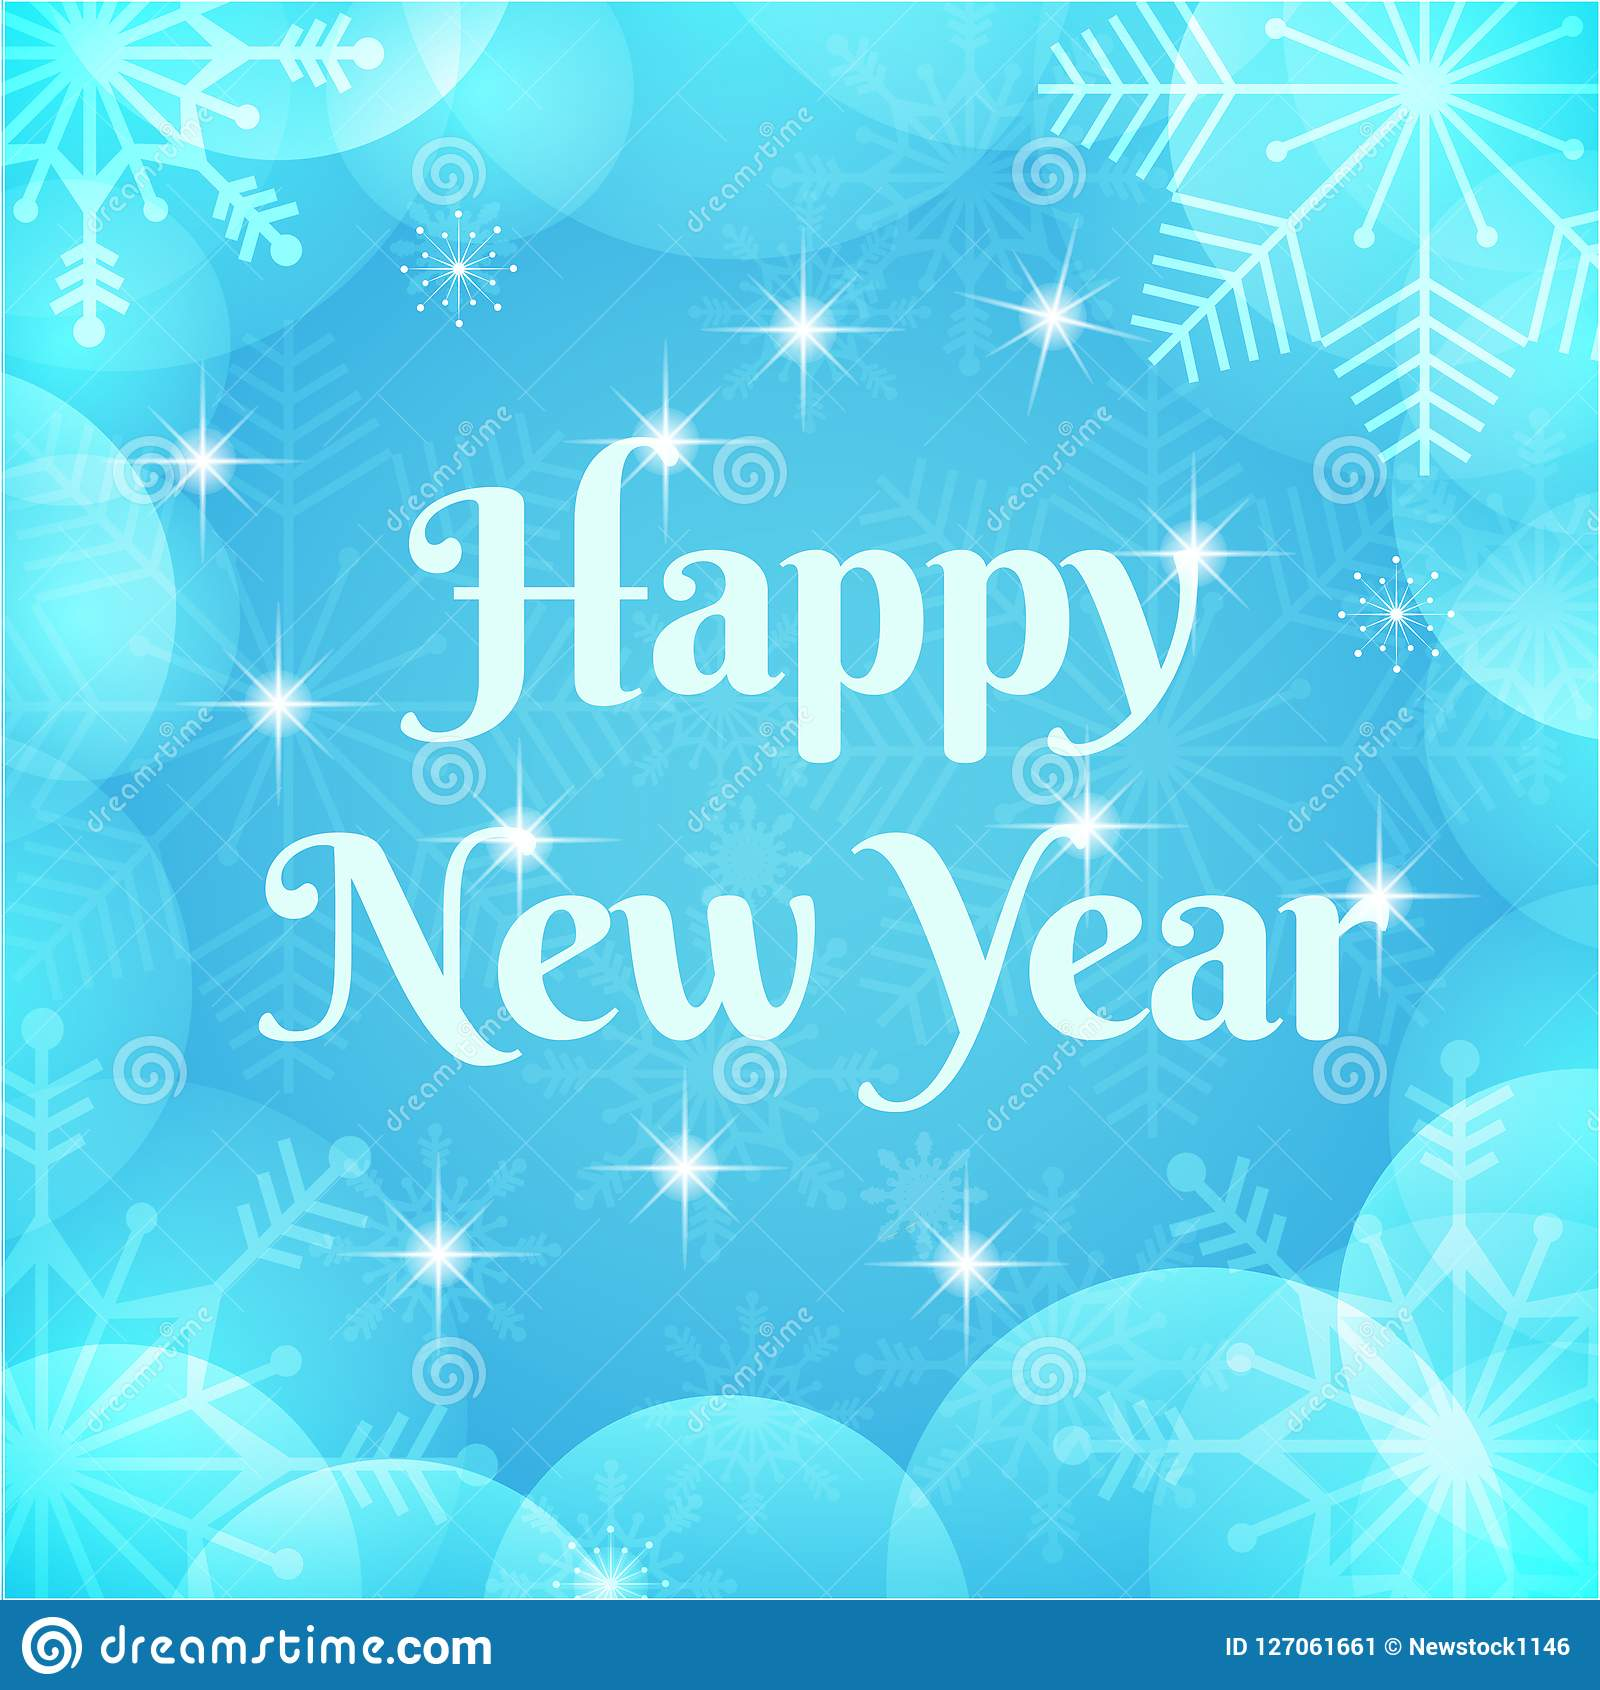 Happy New Year Greeting Card. Winter Holidays Vector Background